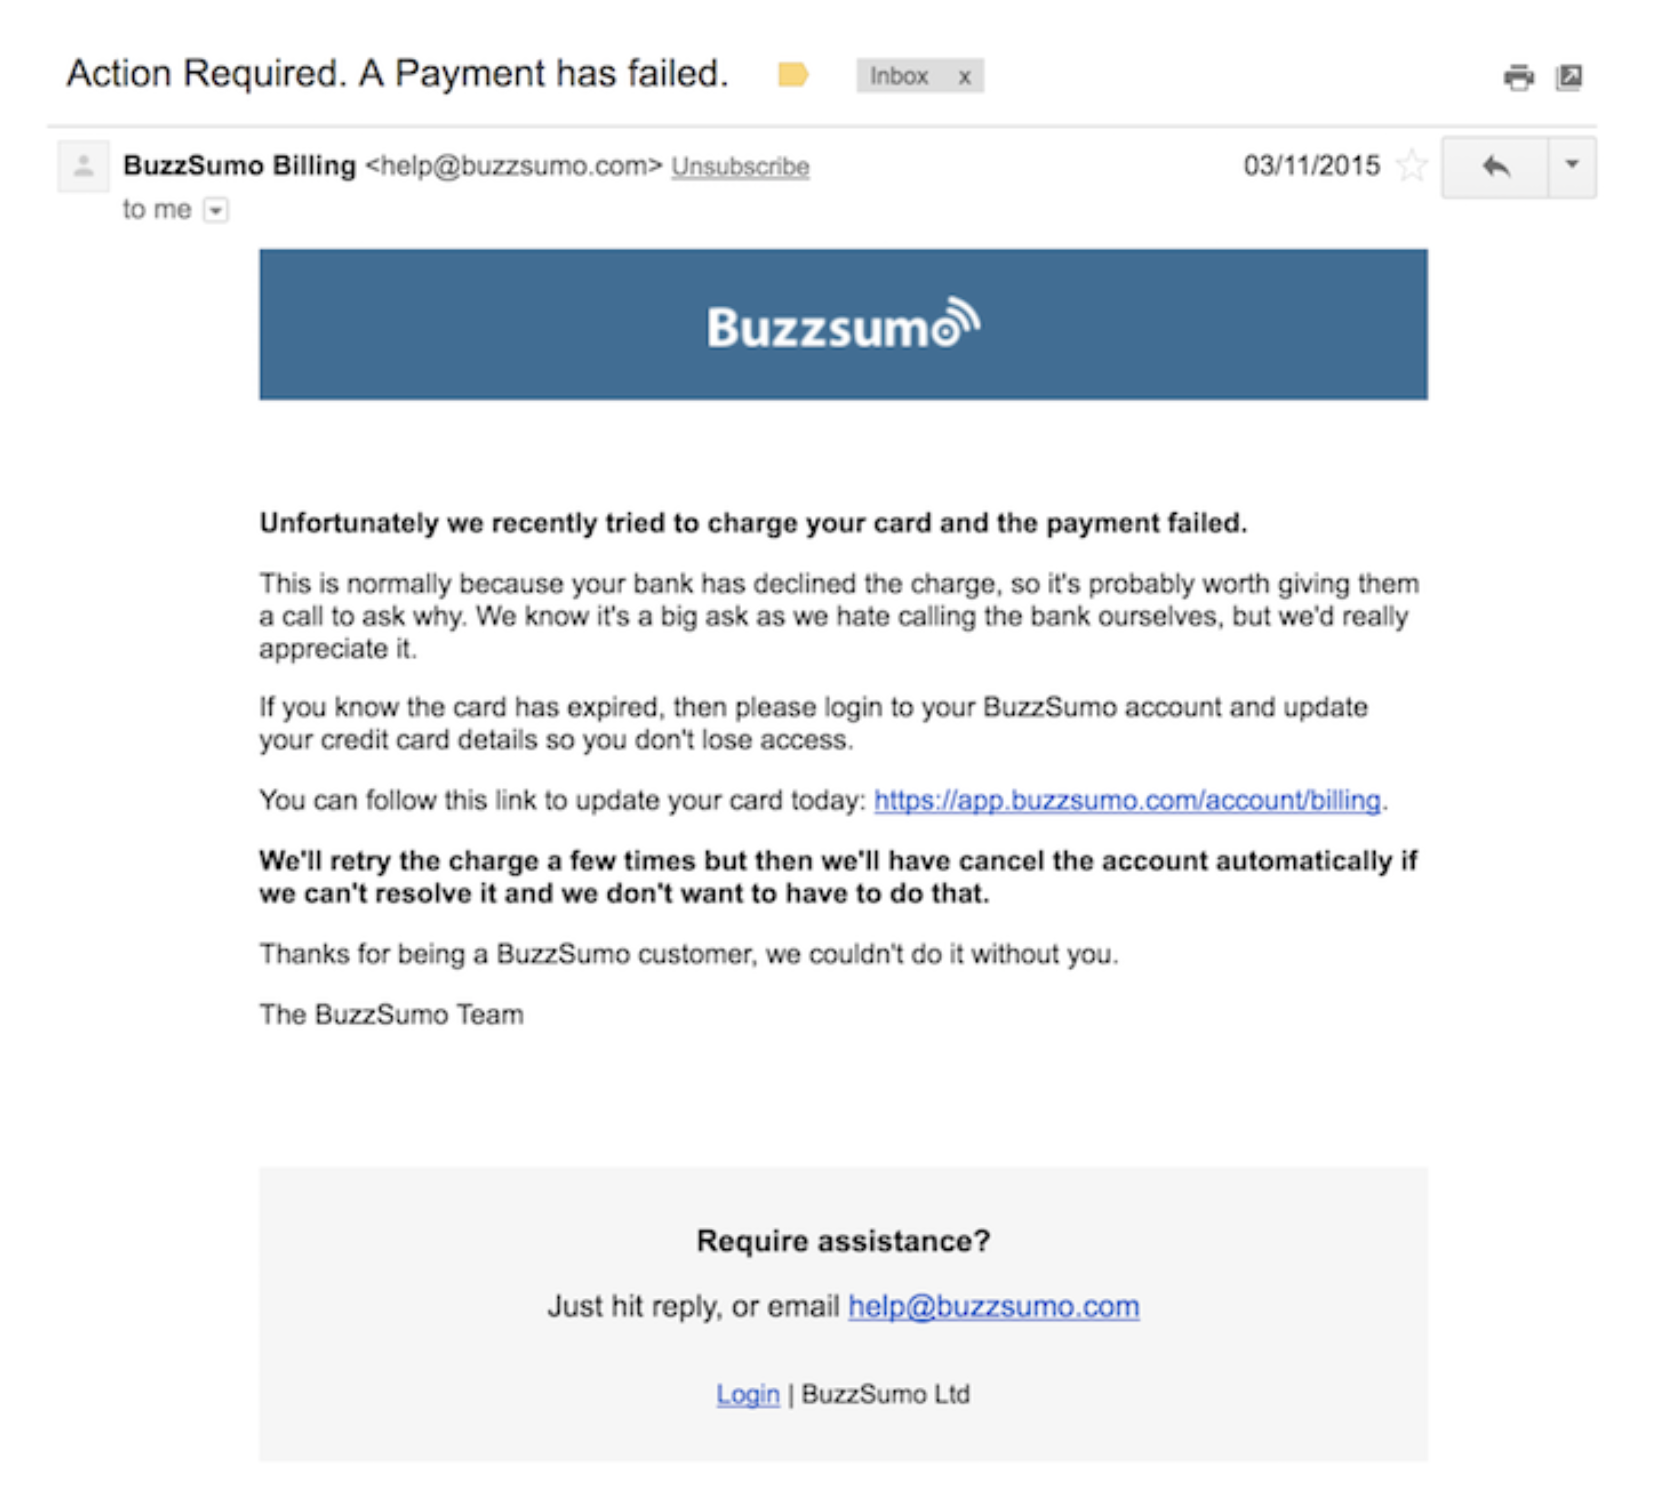 dunning email strategy BuzzSumo